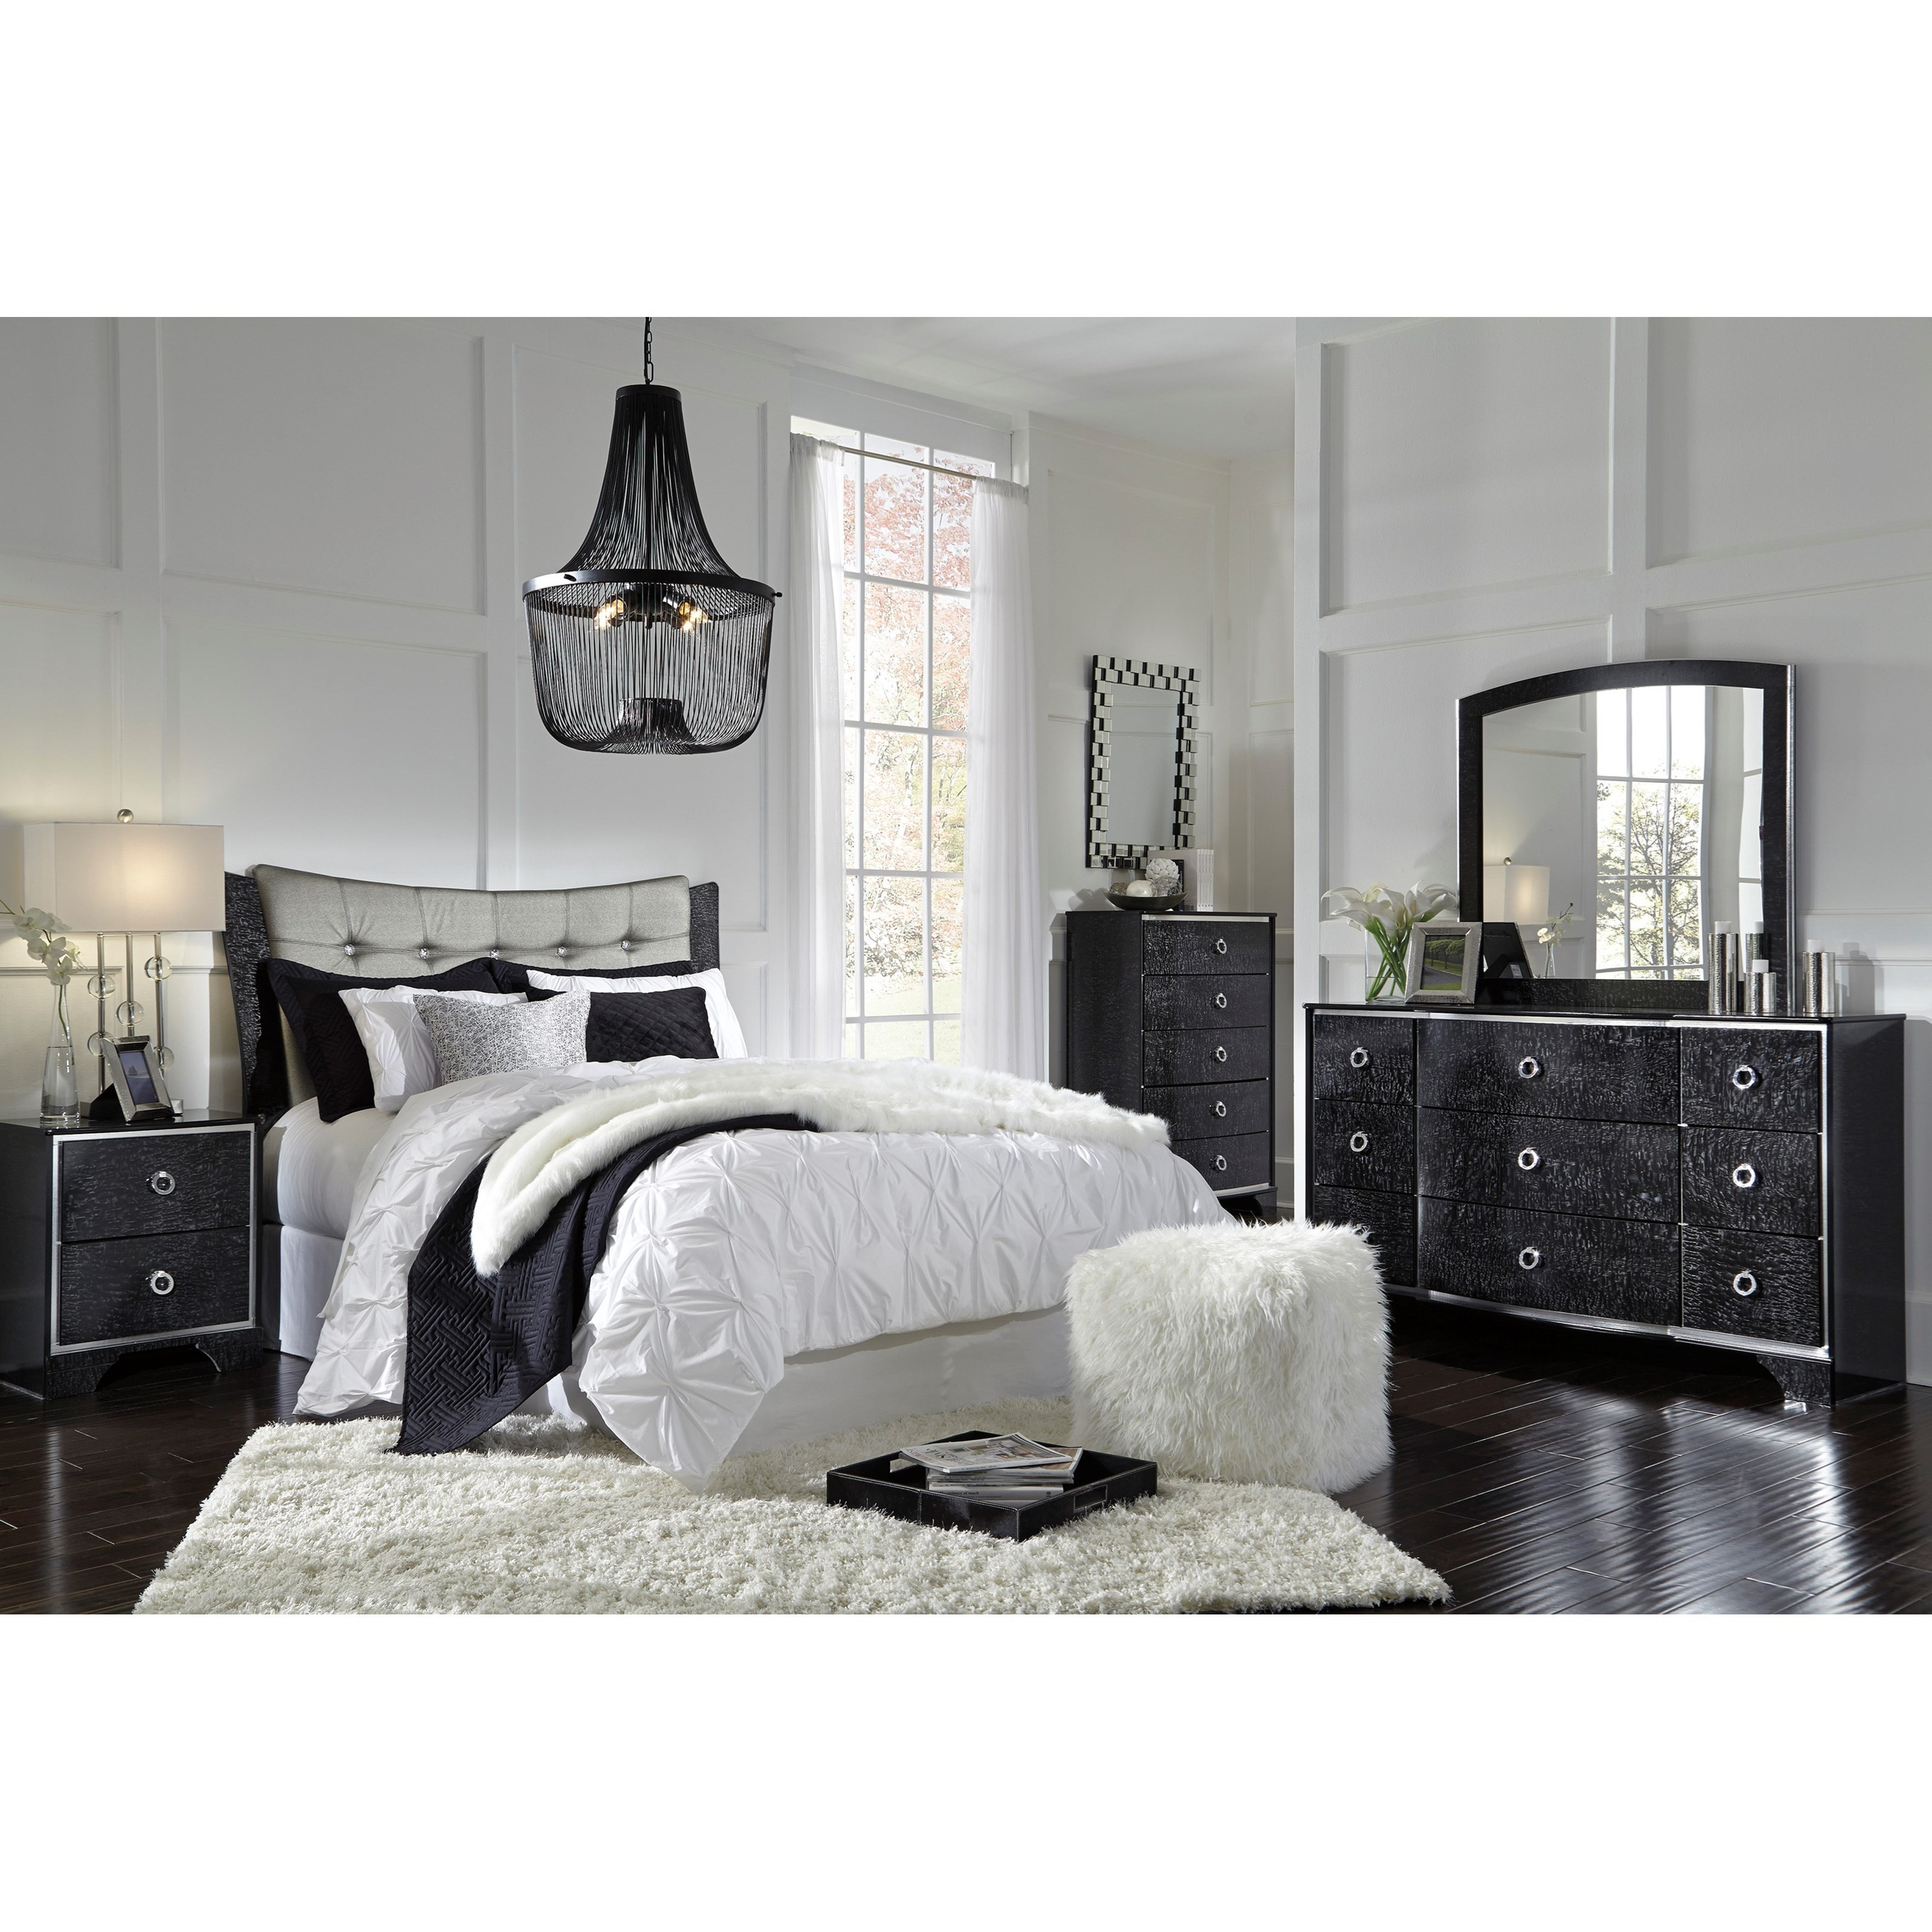 Signature Design by Ashley Amrothi Queen Bedroom Group - Item Number: B257 Q Bedroom Group 2